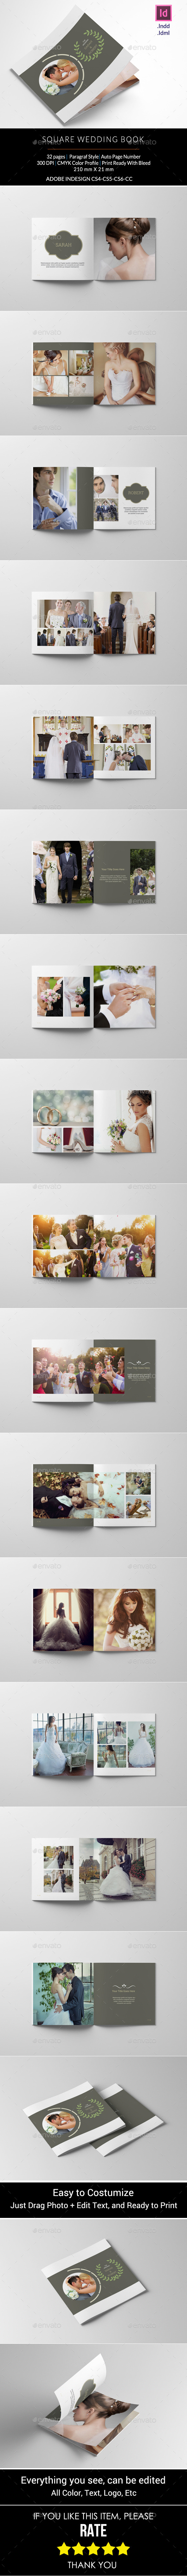 GraphicRiver Square Wedding Photo Book 11113675